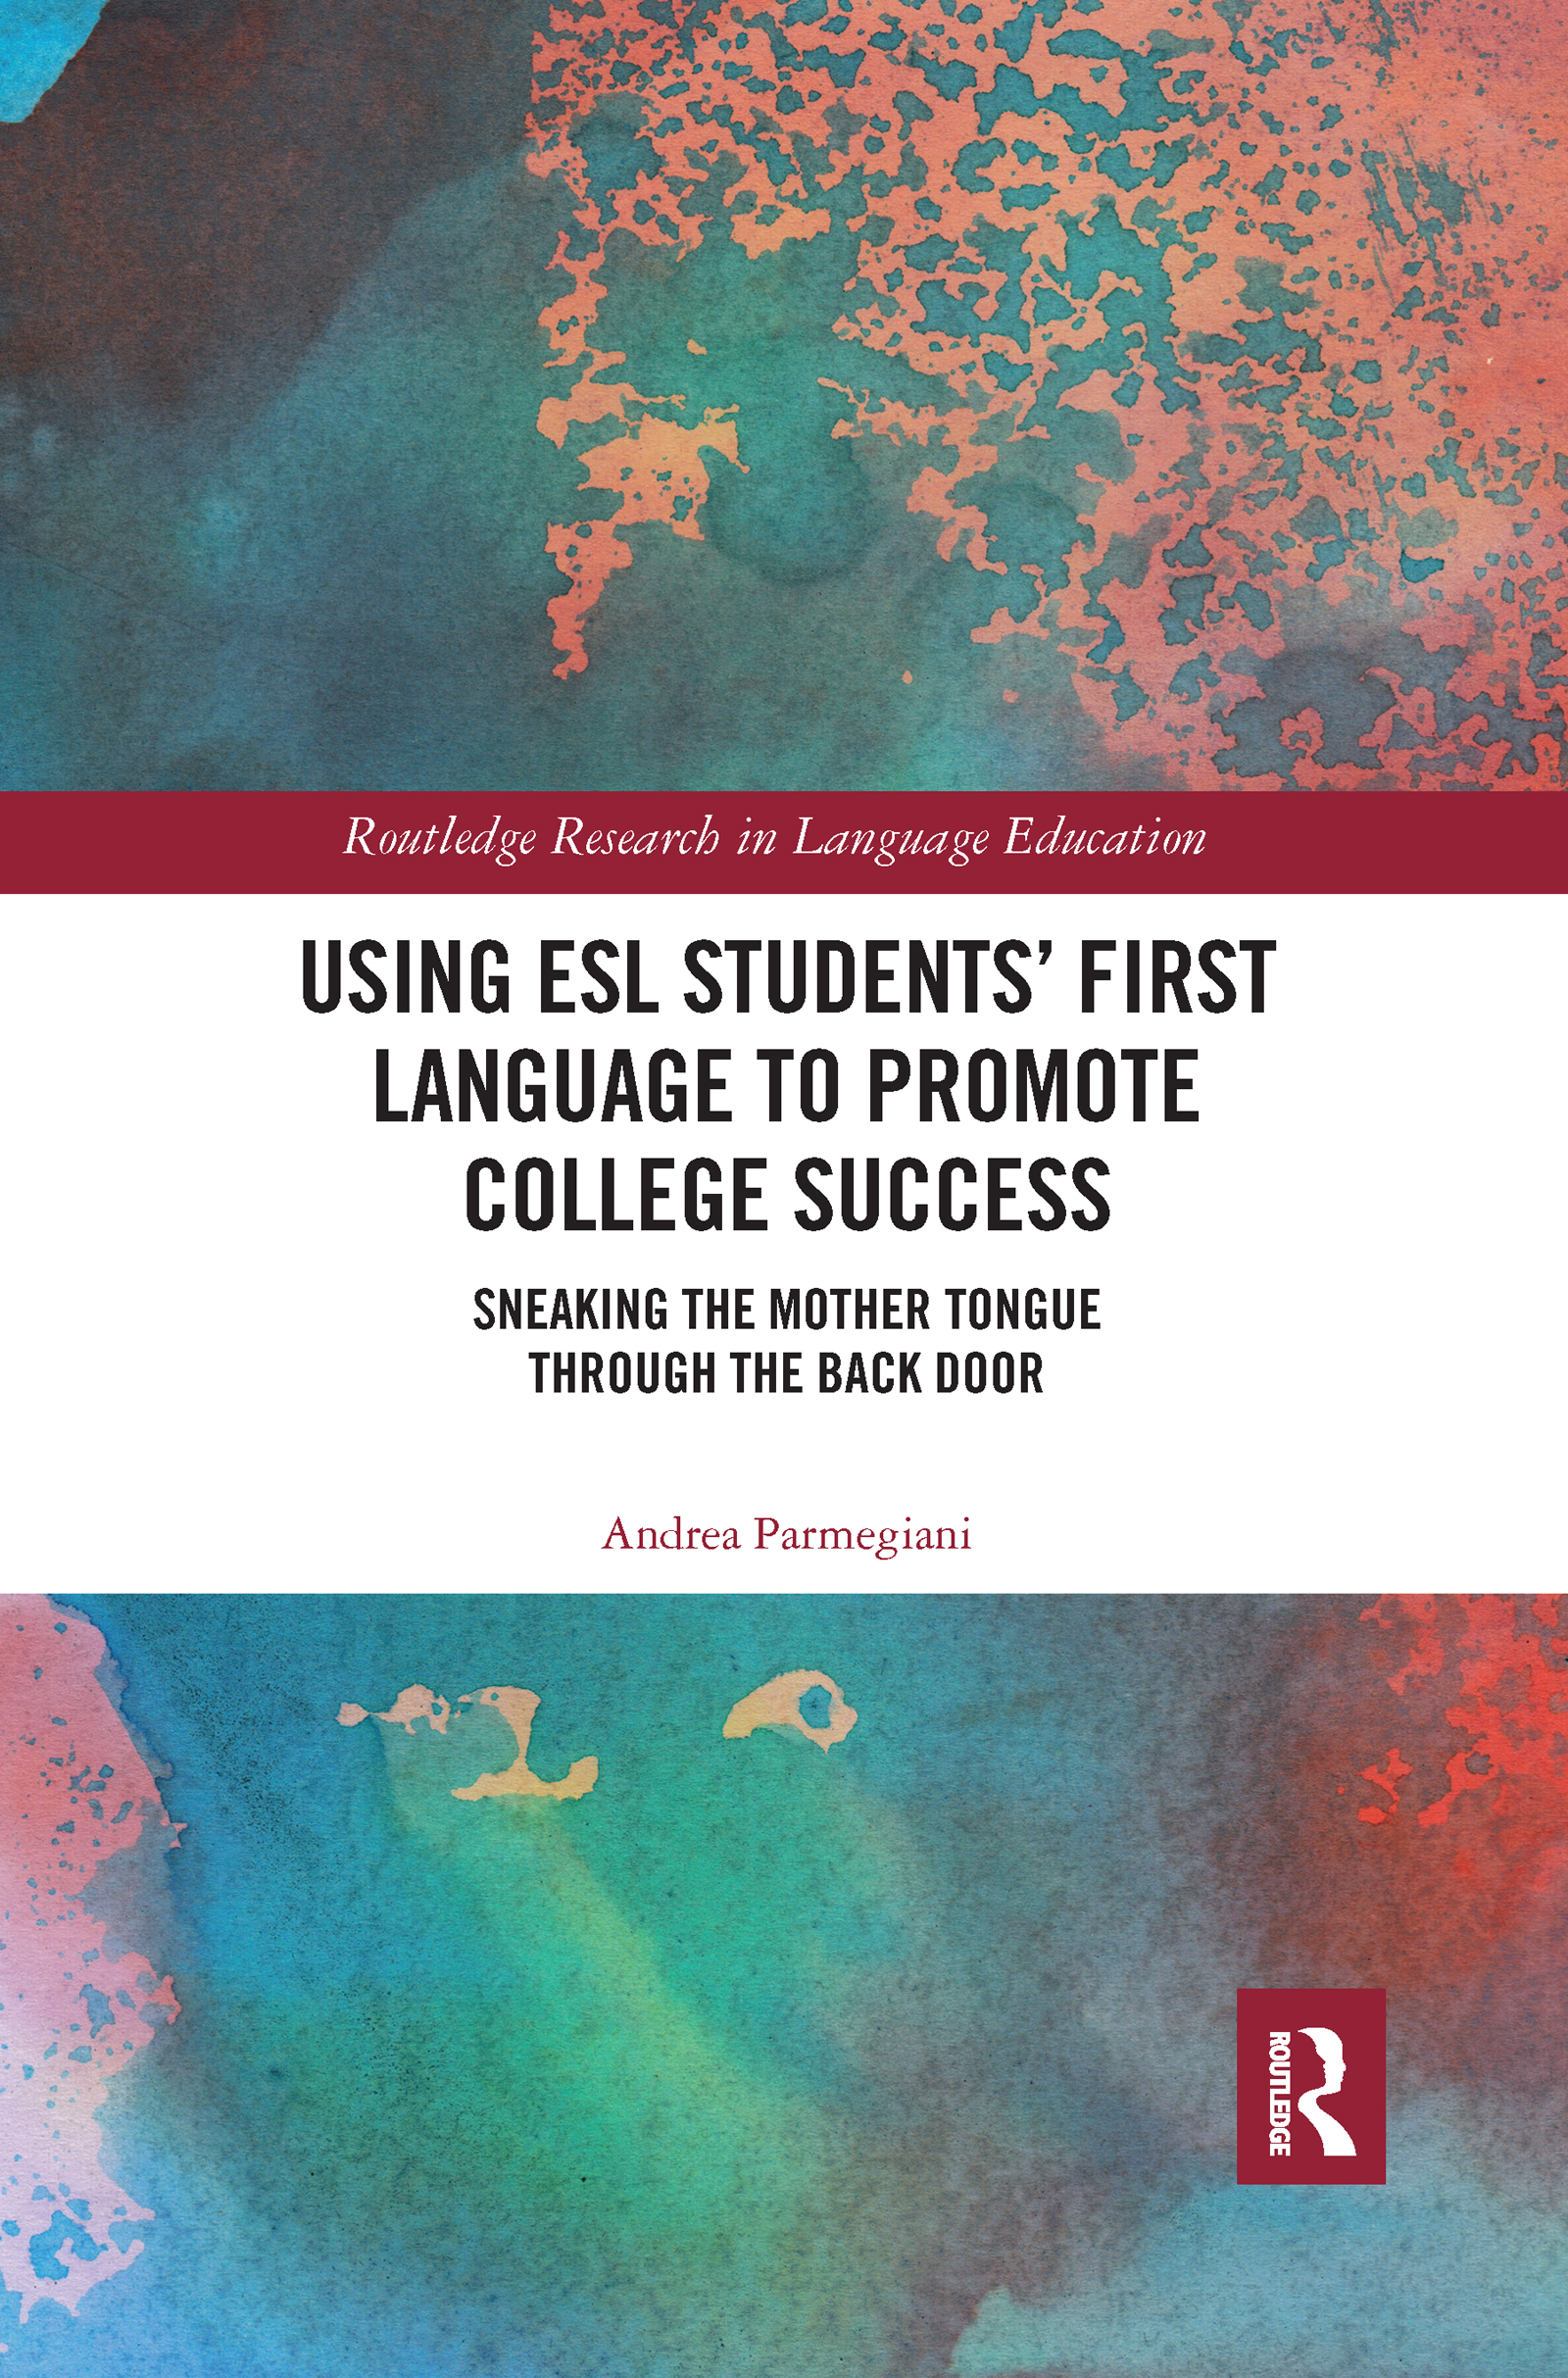 Using ESL Students' First Language to Promote College Success